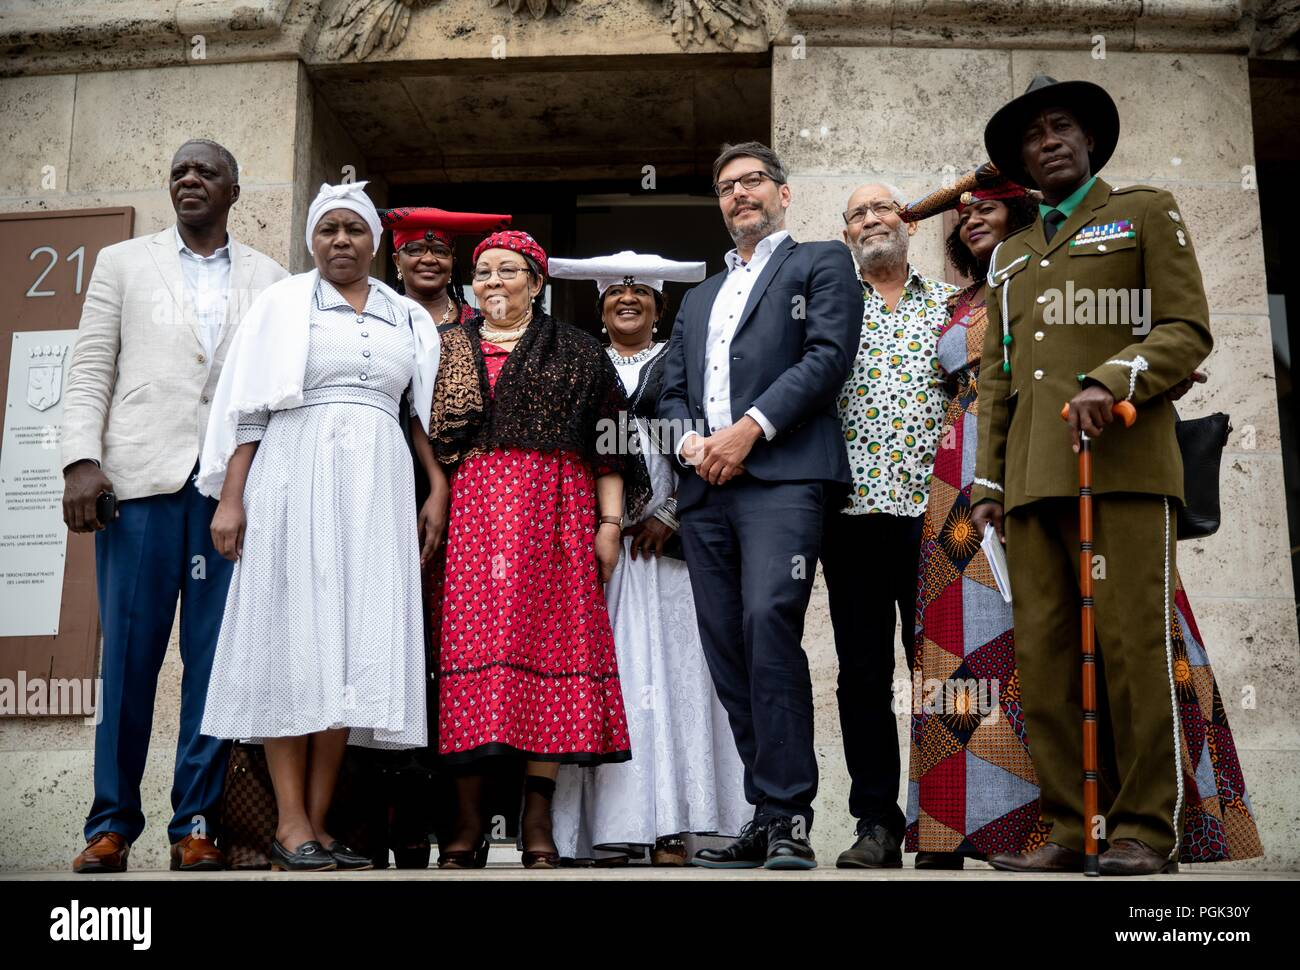 27 August 2018, Berlin, Germany: Dirk Behrendt (4th from right, Alliance 90/The Greens), Berlin Senator of Justice, receives a delegation of Ovaherero and Nama from Namibia, with Esther Utjiua Muinjangue (M), Chairwoman of the Ovaherero Genocide Foundation in Namibia, and Ida Hoffmann (4th from left).v.l), Member of Parliament and Chairwoman of the Nama Genocide Technical Committee in Namibia and other participants before the Senate Administration for Justice, Consumer Protection and Anti-Discrimination. This week, stolen remains of Herero and Nama murdered in the 1904-08 genocide are to be re - Stock Image